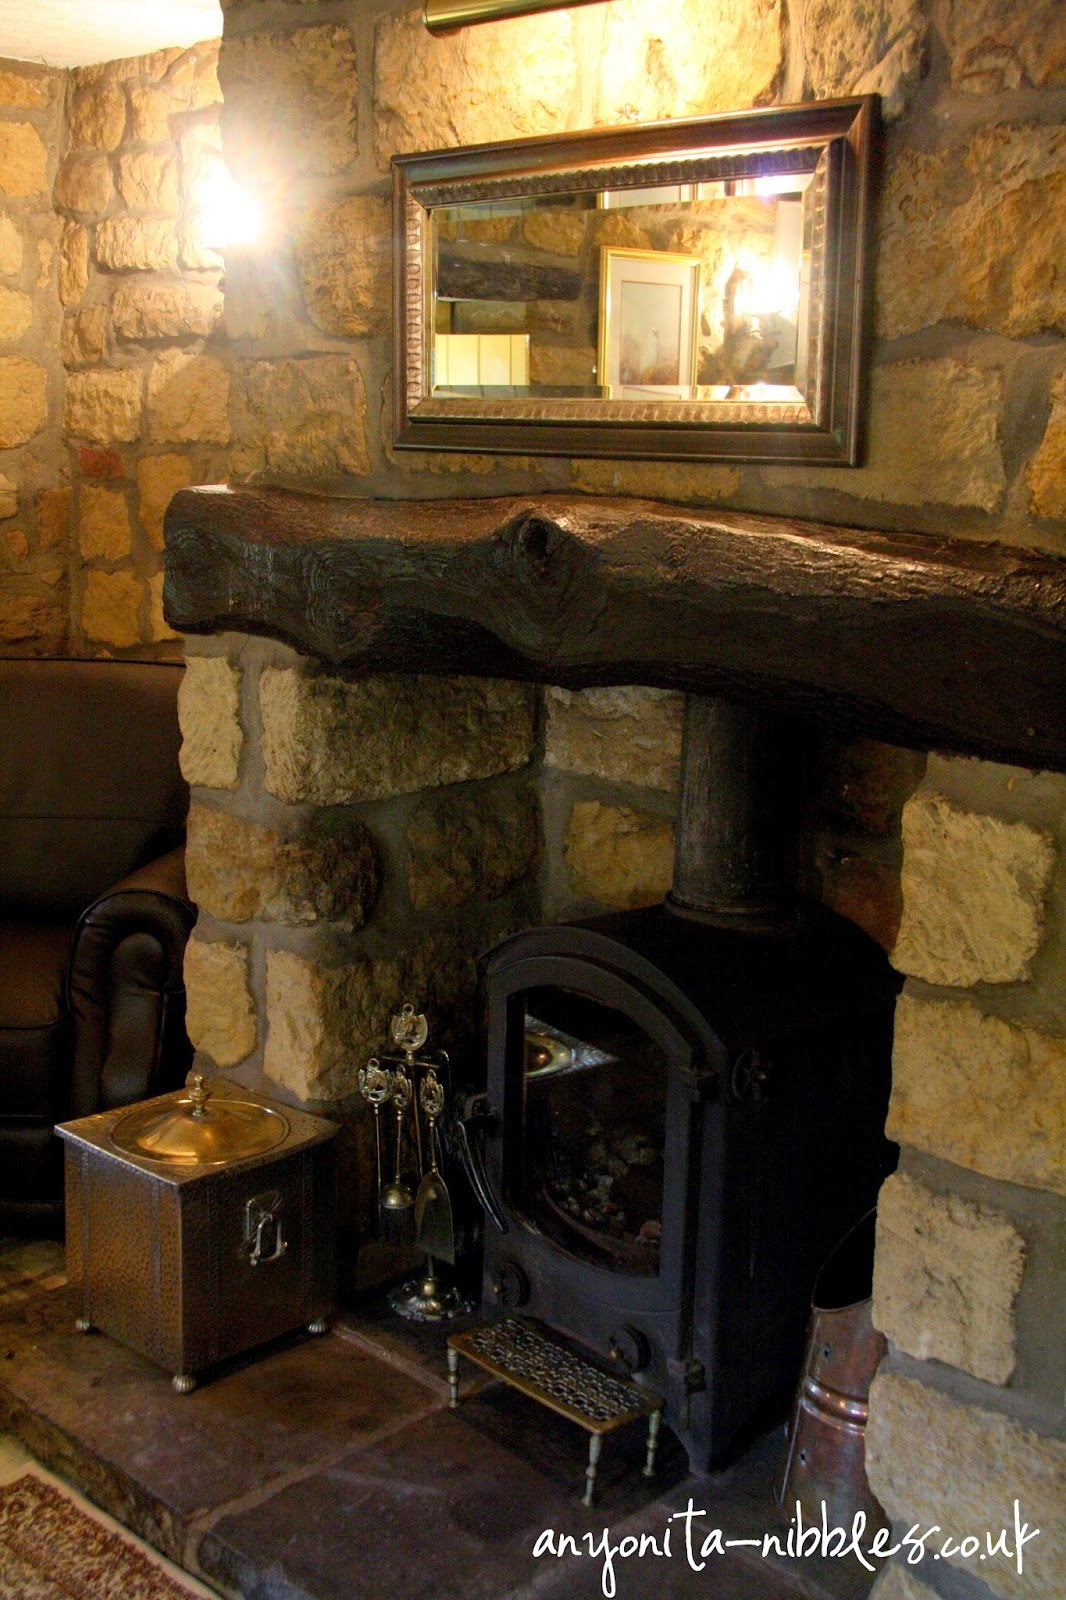 Welcoming and cosy fireplace at Ox Pasture Hall Hotel | Anyonita-nibbles.co.uk